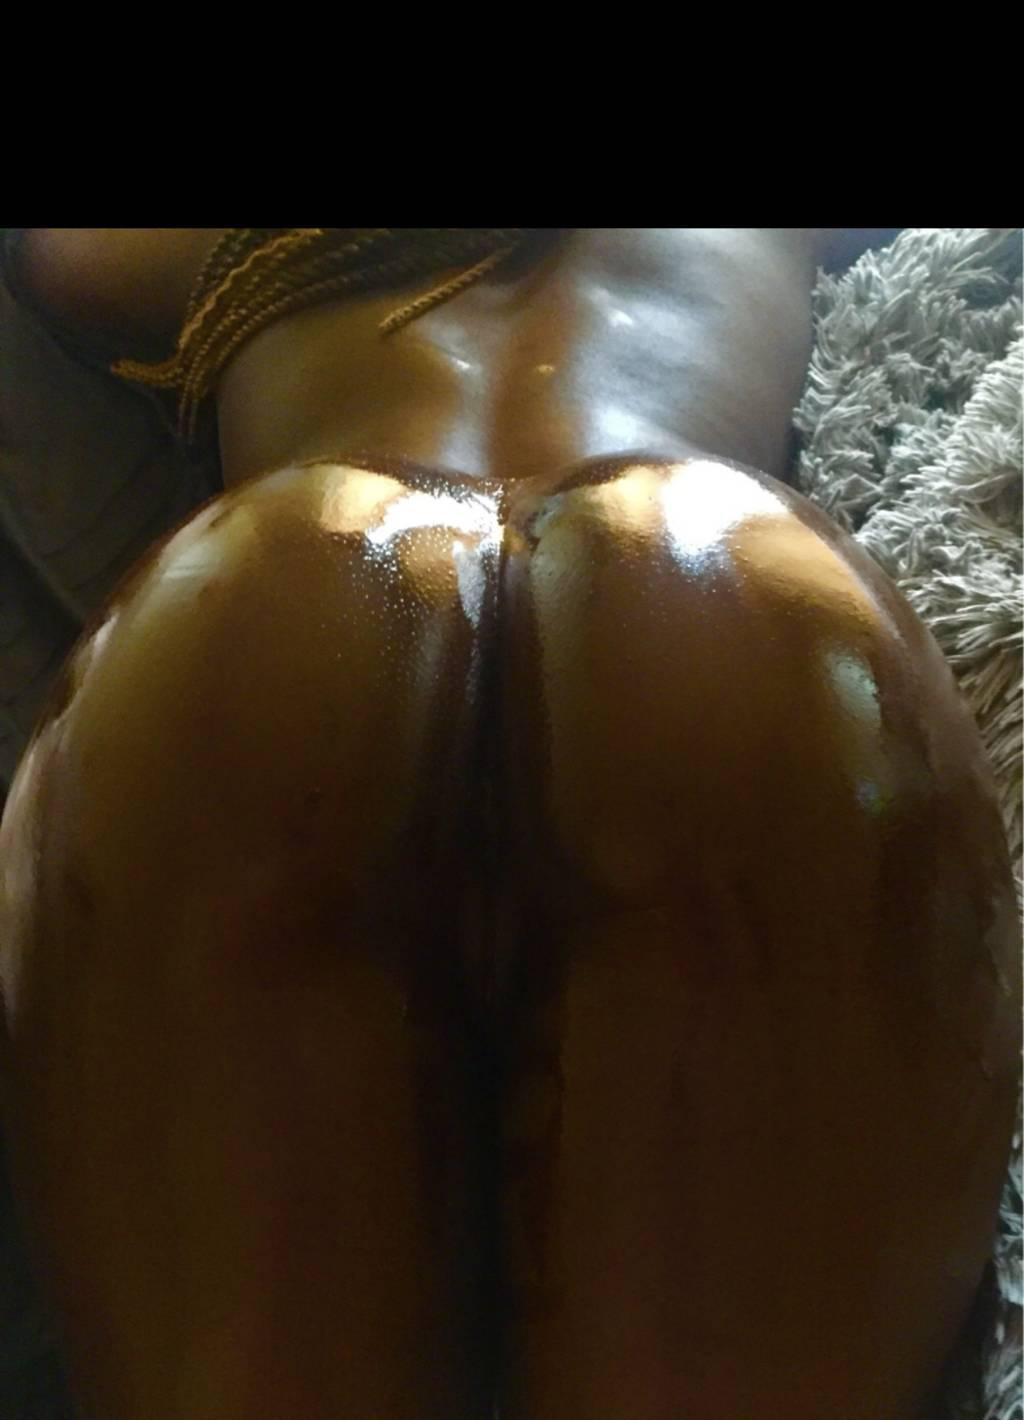 ebony african queen great experience awaits